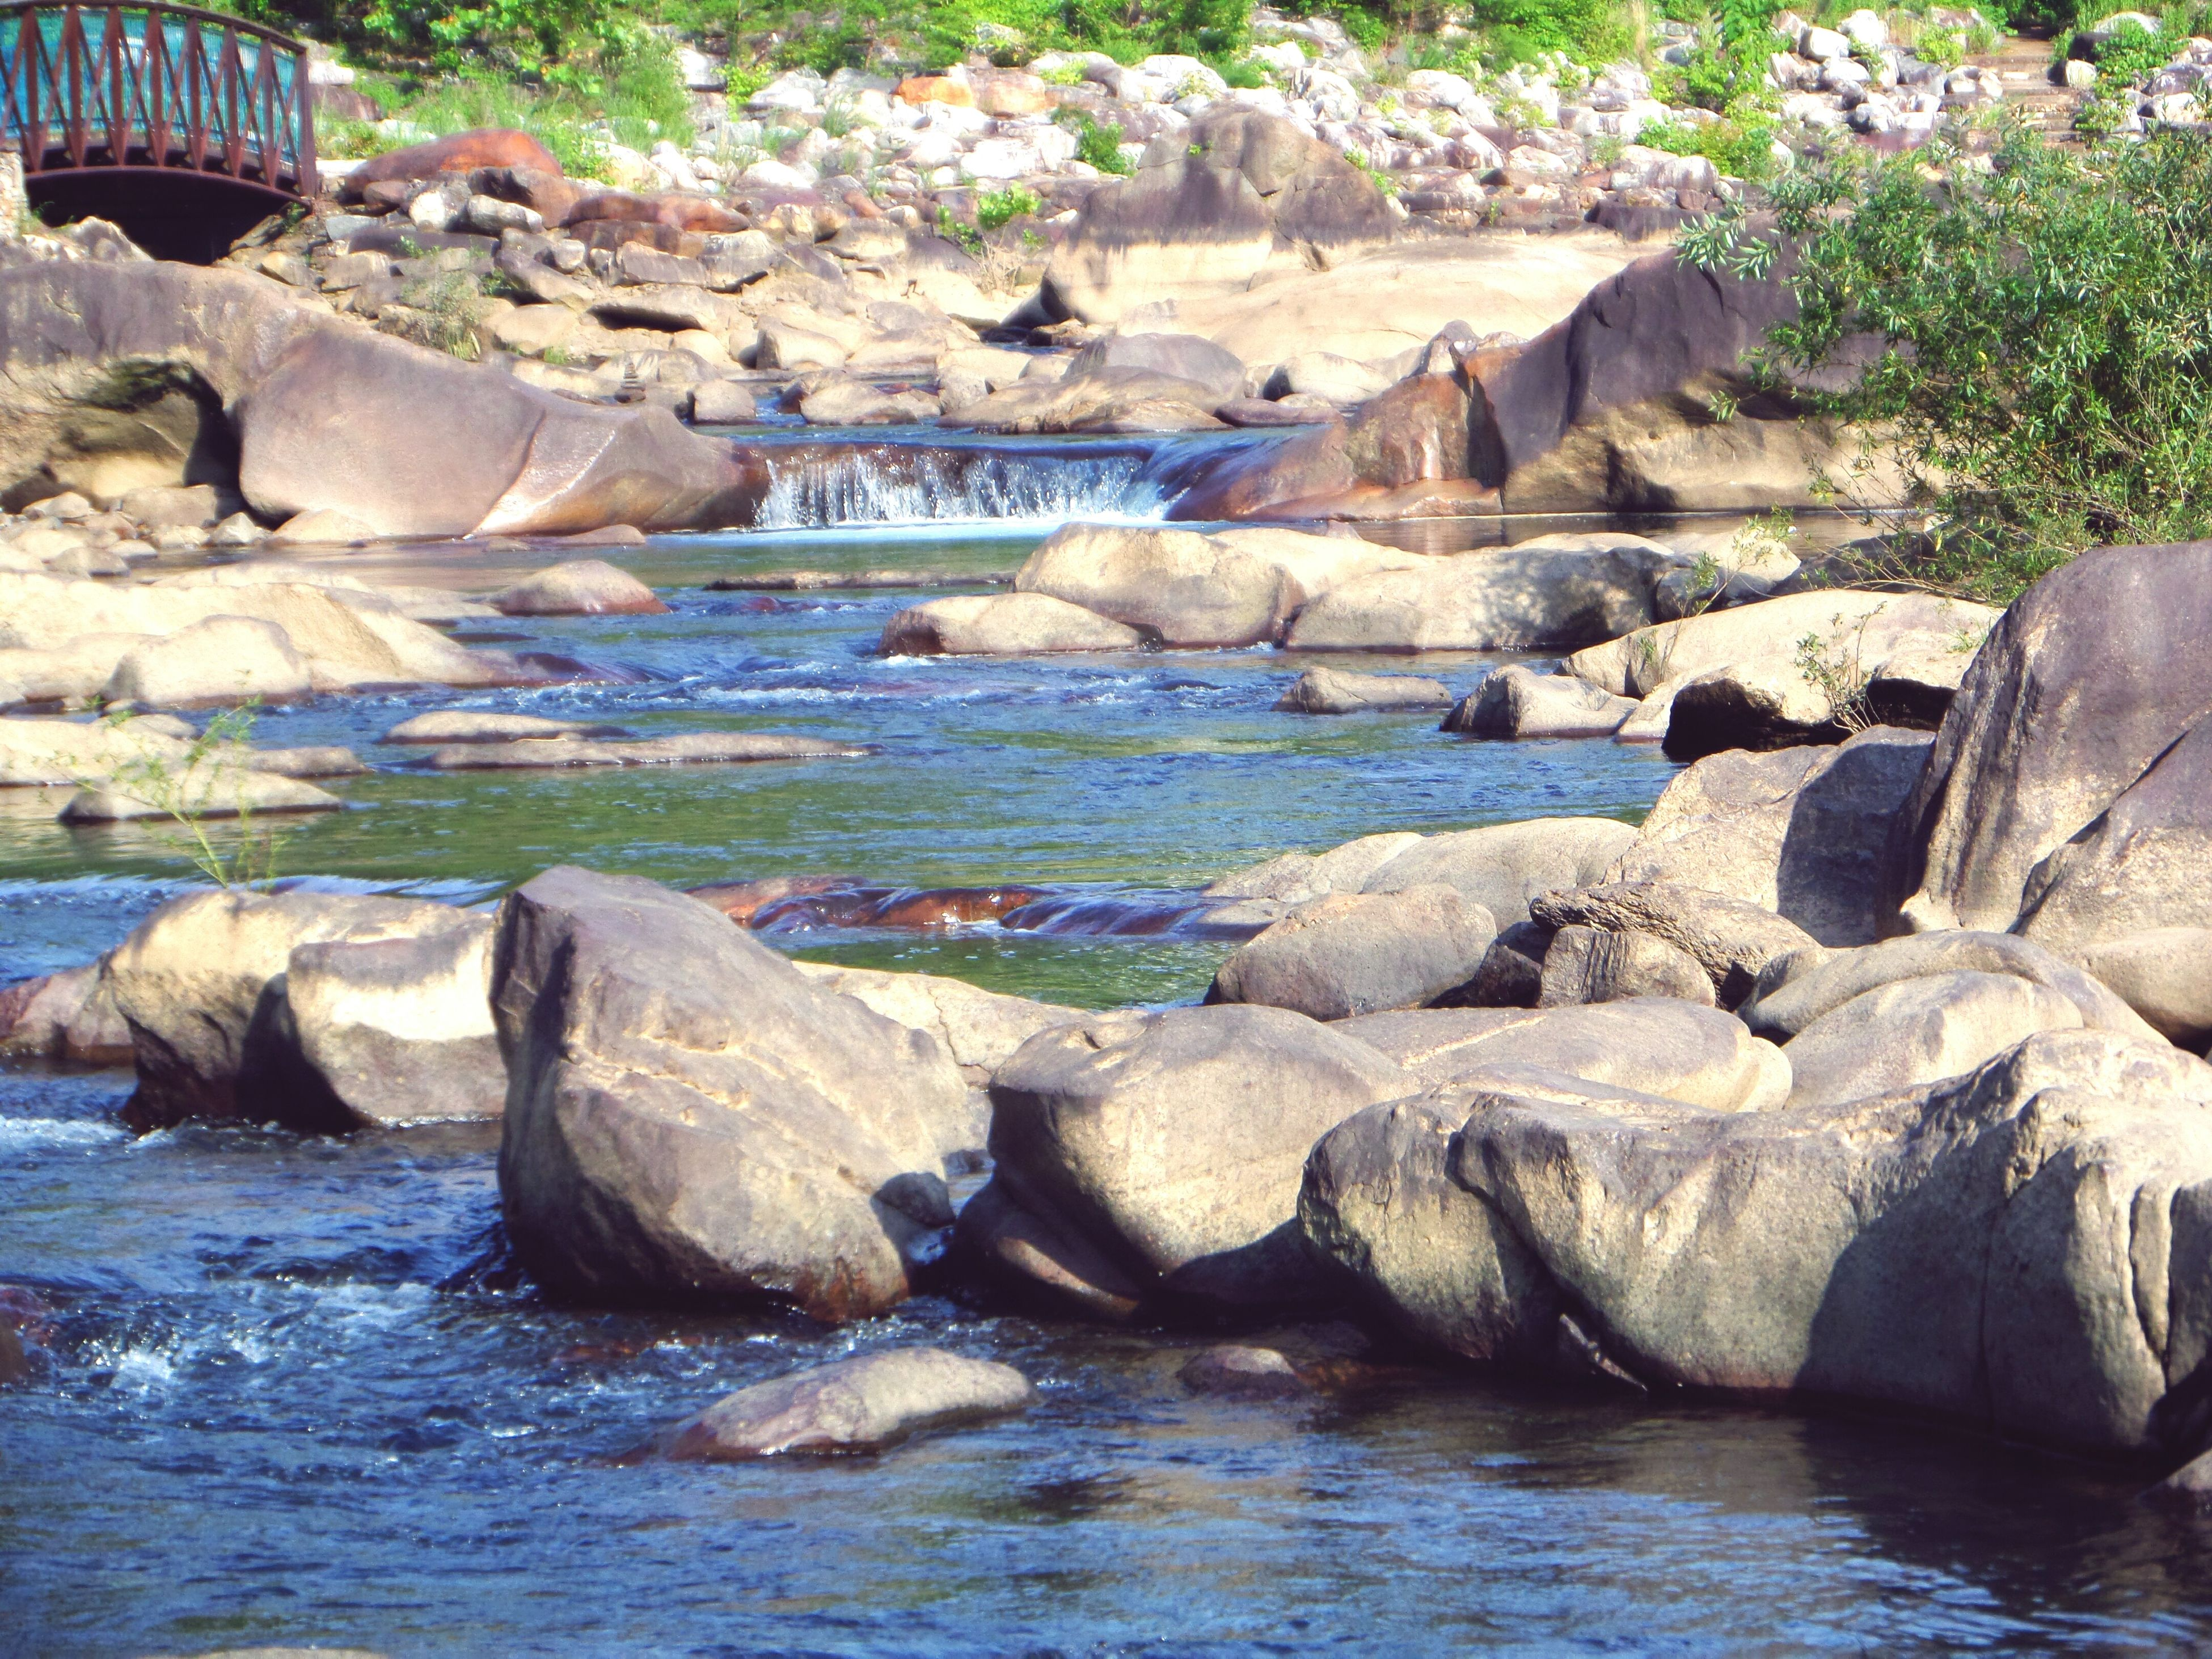 rock - object, nature, water, day, beauty in nature, sunlight, tranquility, no people, outdoors, river, scenics, animal themes